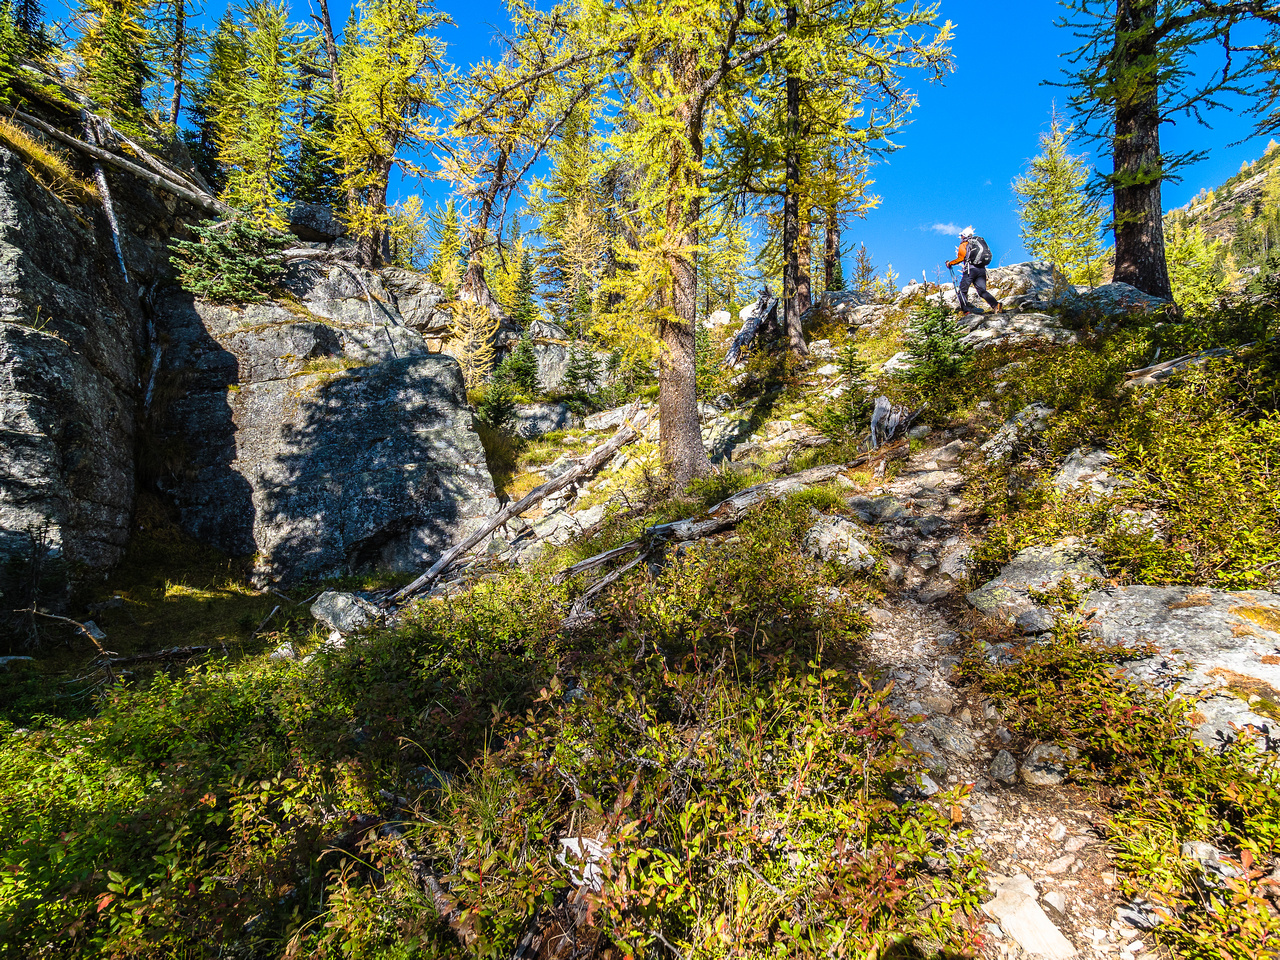 In order to climb the headwall, the trail does some interesting twists and turns.